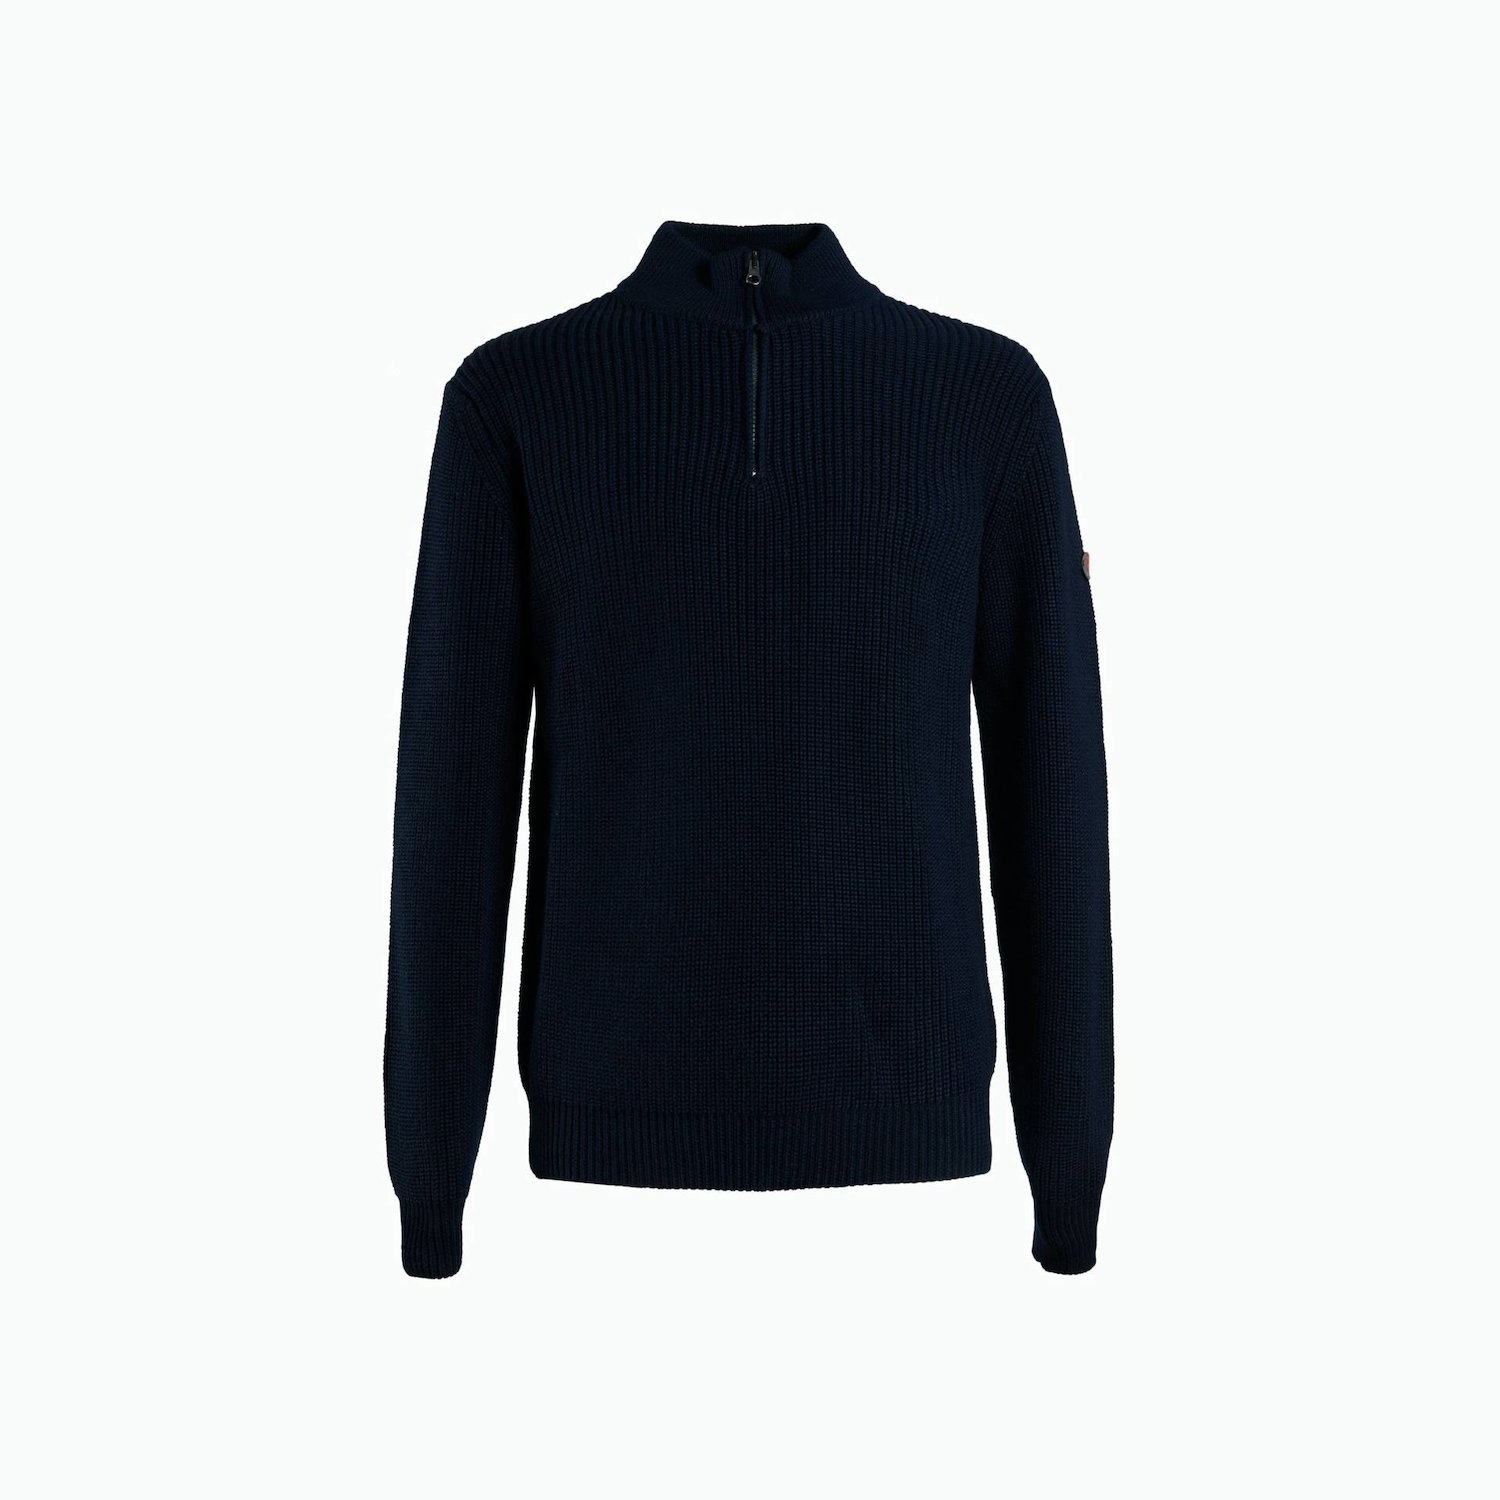 B145 sweater - Navy